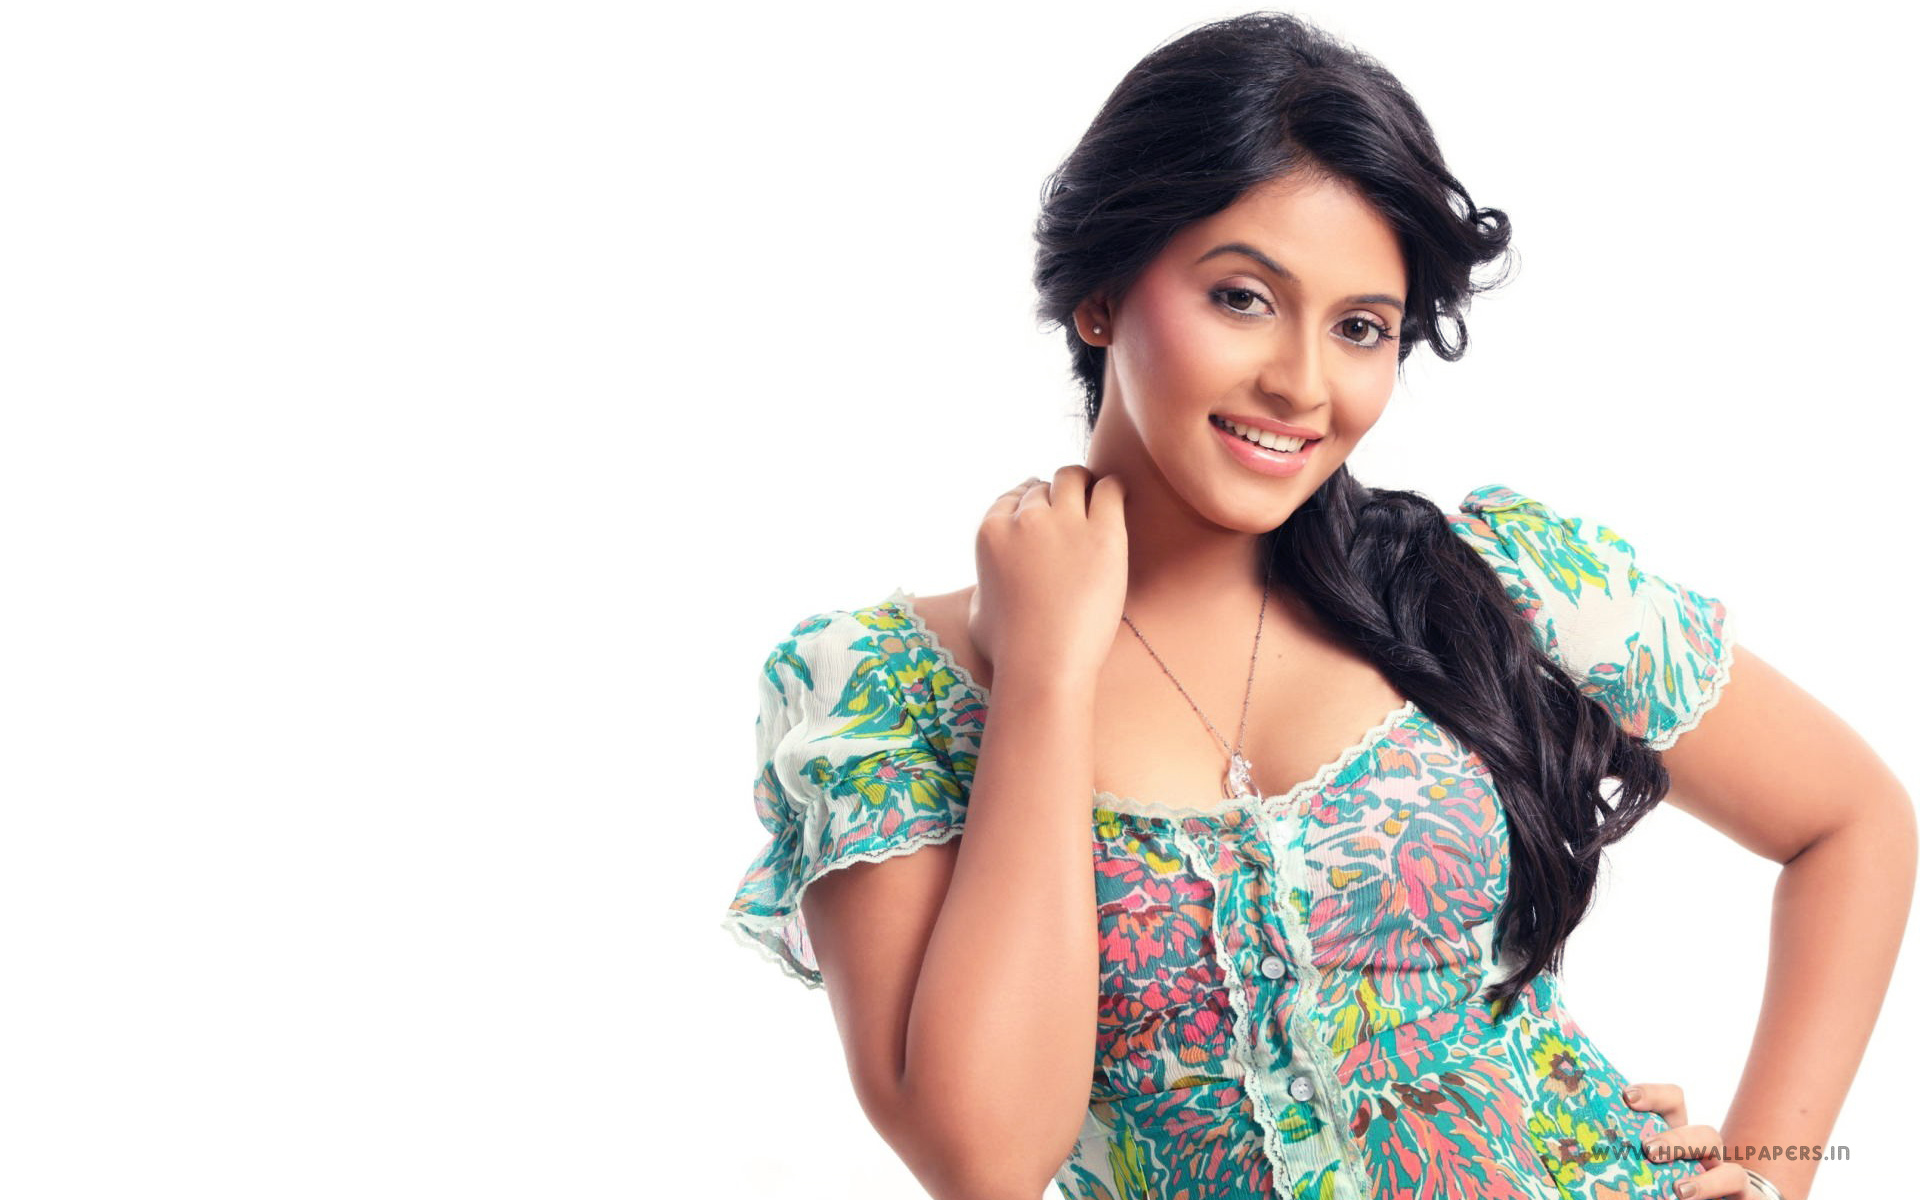 anjali 4k wallpapers for your desktop or mobile screen free and easy to download anjali 4k wallpapers for your desktop